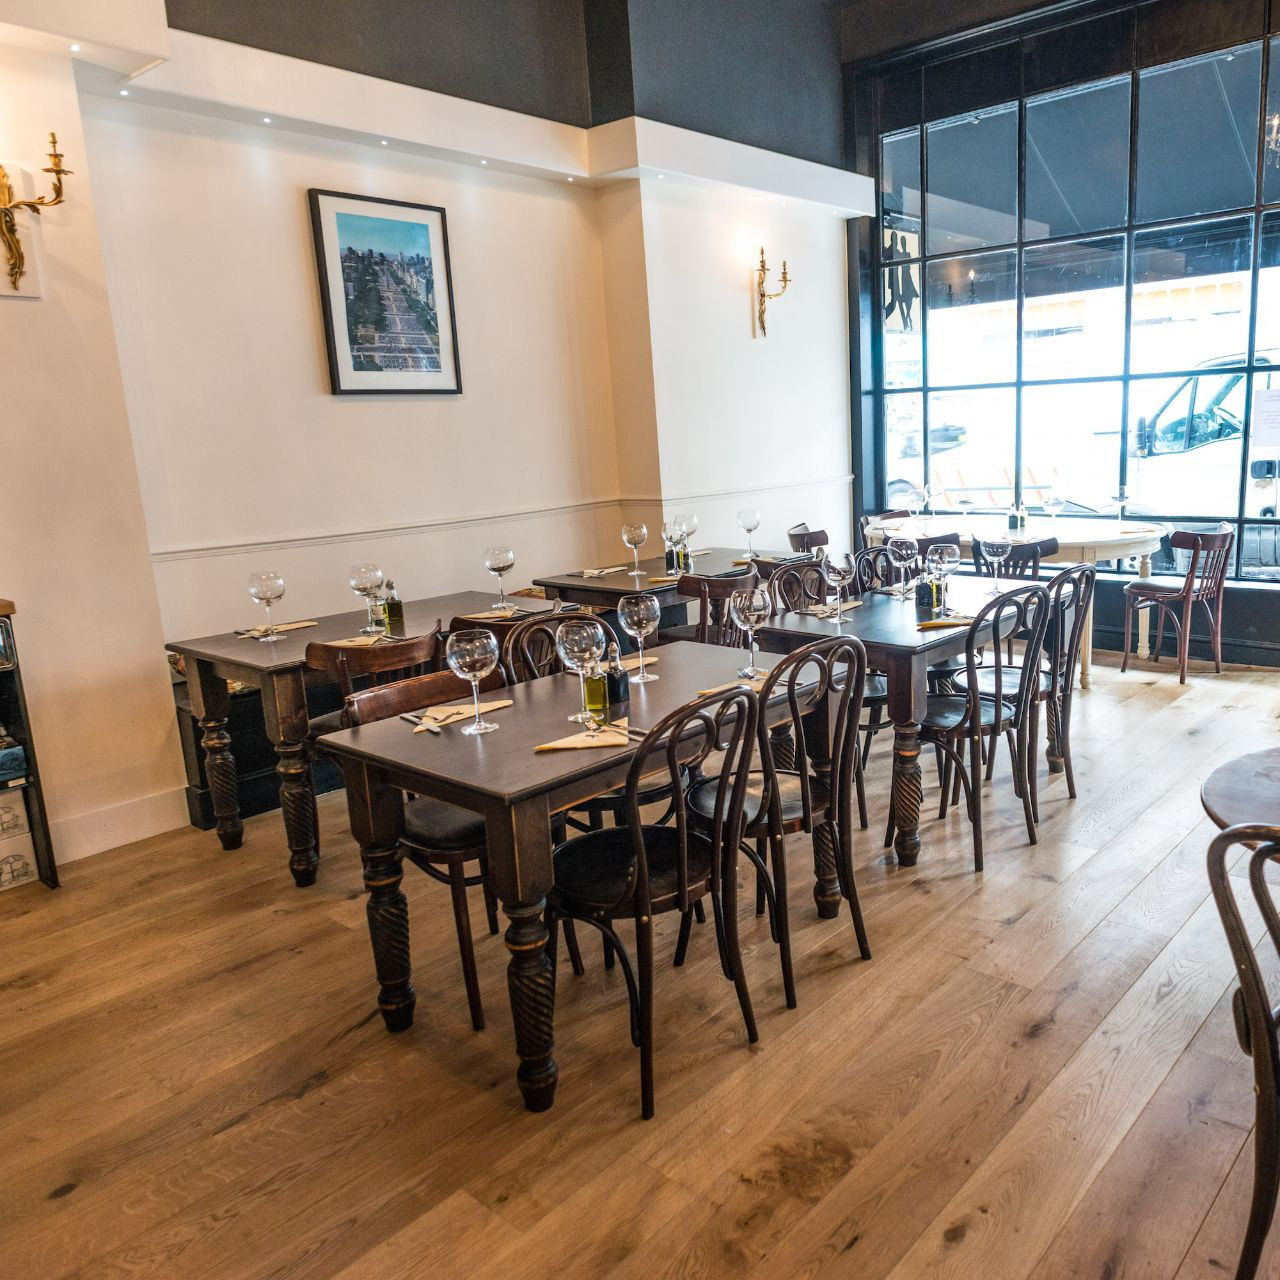 regal hardwood flooring reviews of buenos aires cafe greenwich london opentable in 24007415